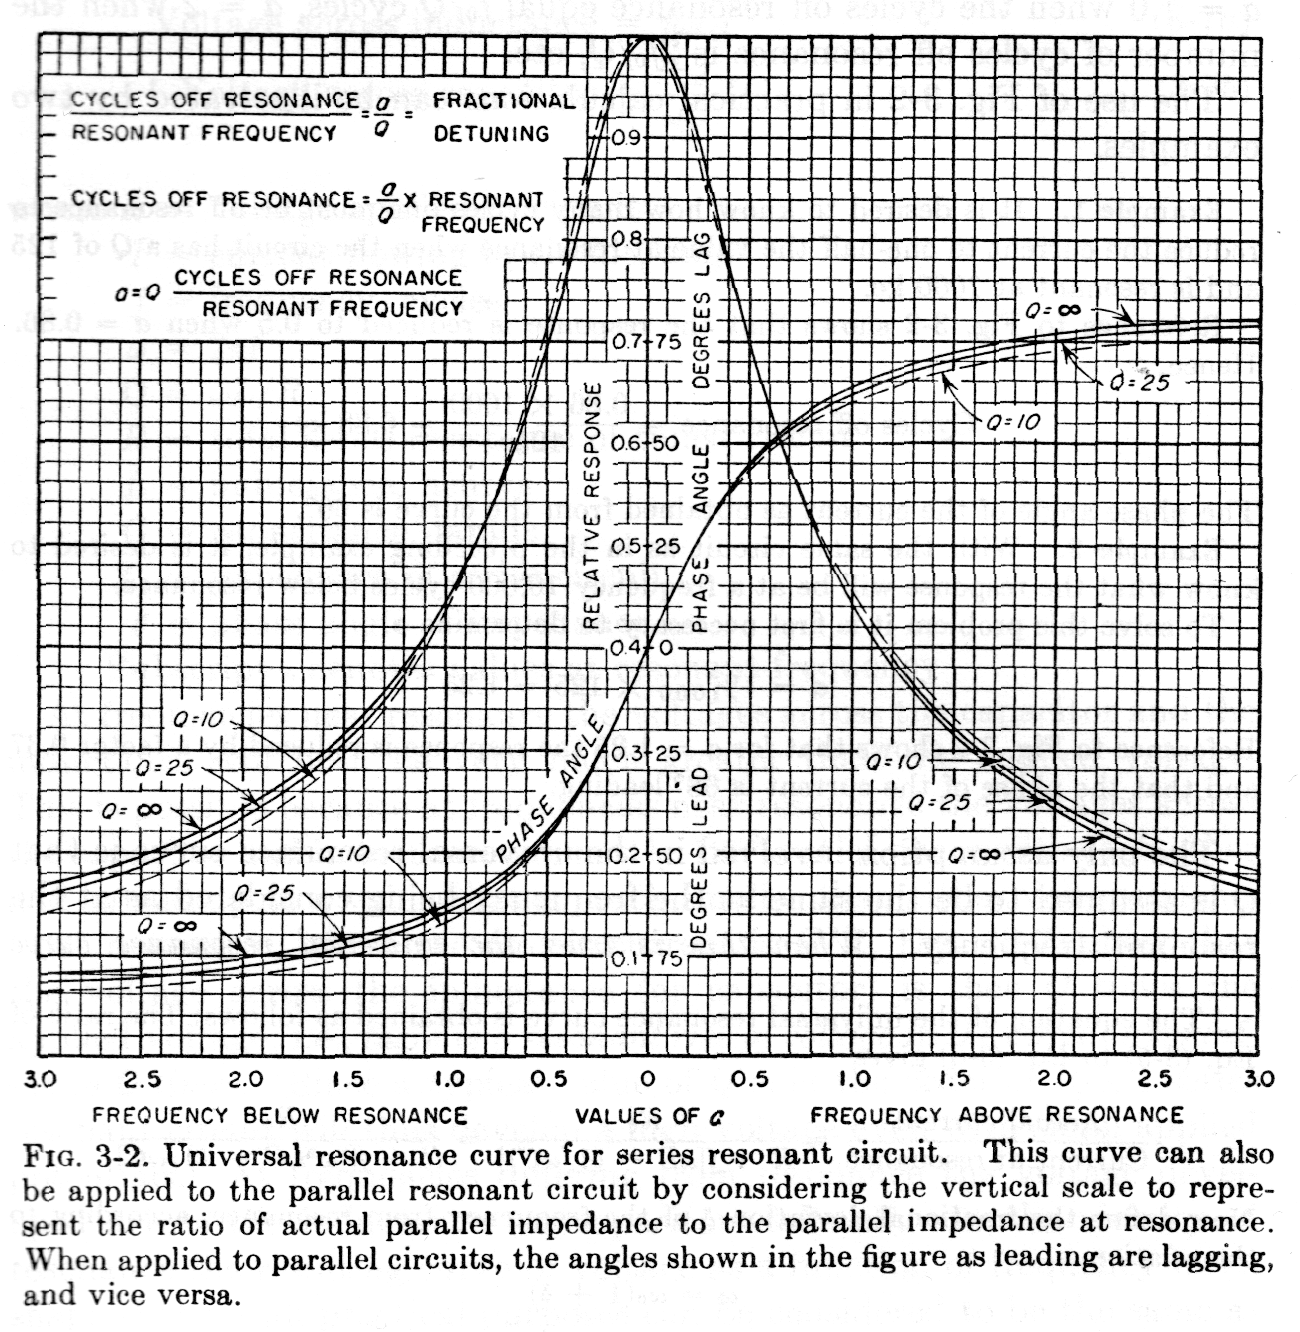 Antenna Half Power Bandwidth And Q Concept Experimental Impedance In A Parallel Resonance Circuit Above Is Chart Of The Universal Curve From Terman 1955 Refers To Cycles Unit For Frequency Before Hertz Was Adopted